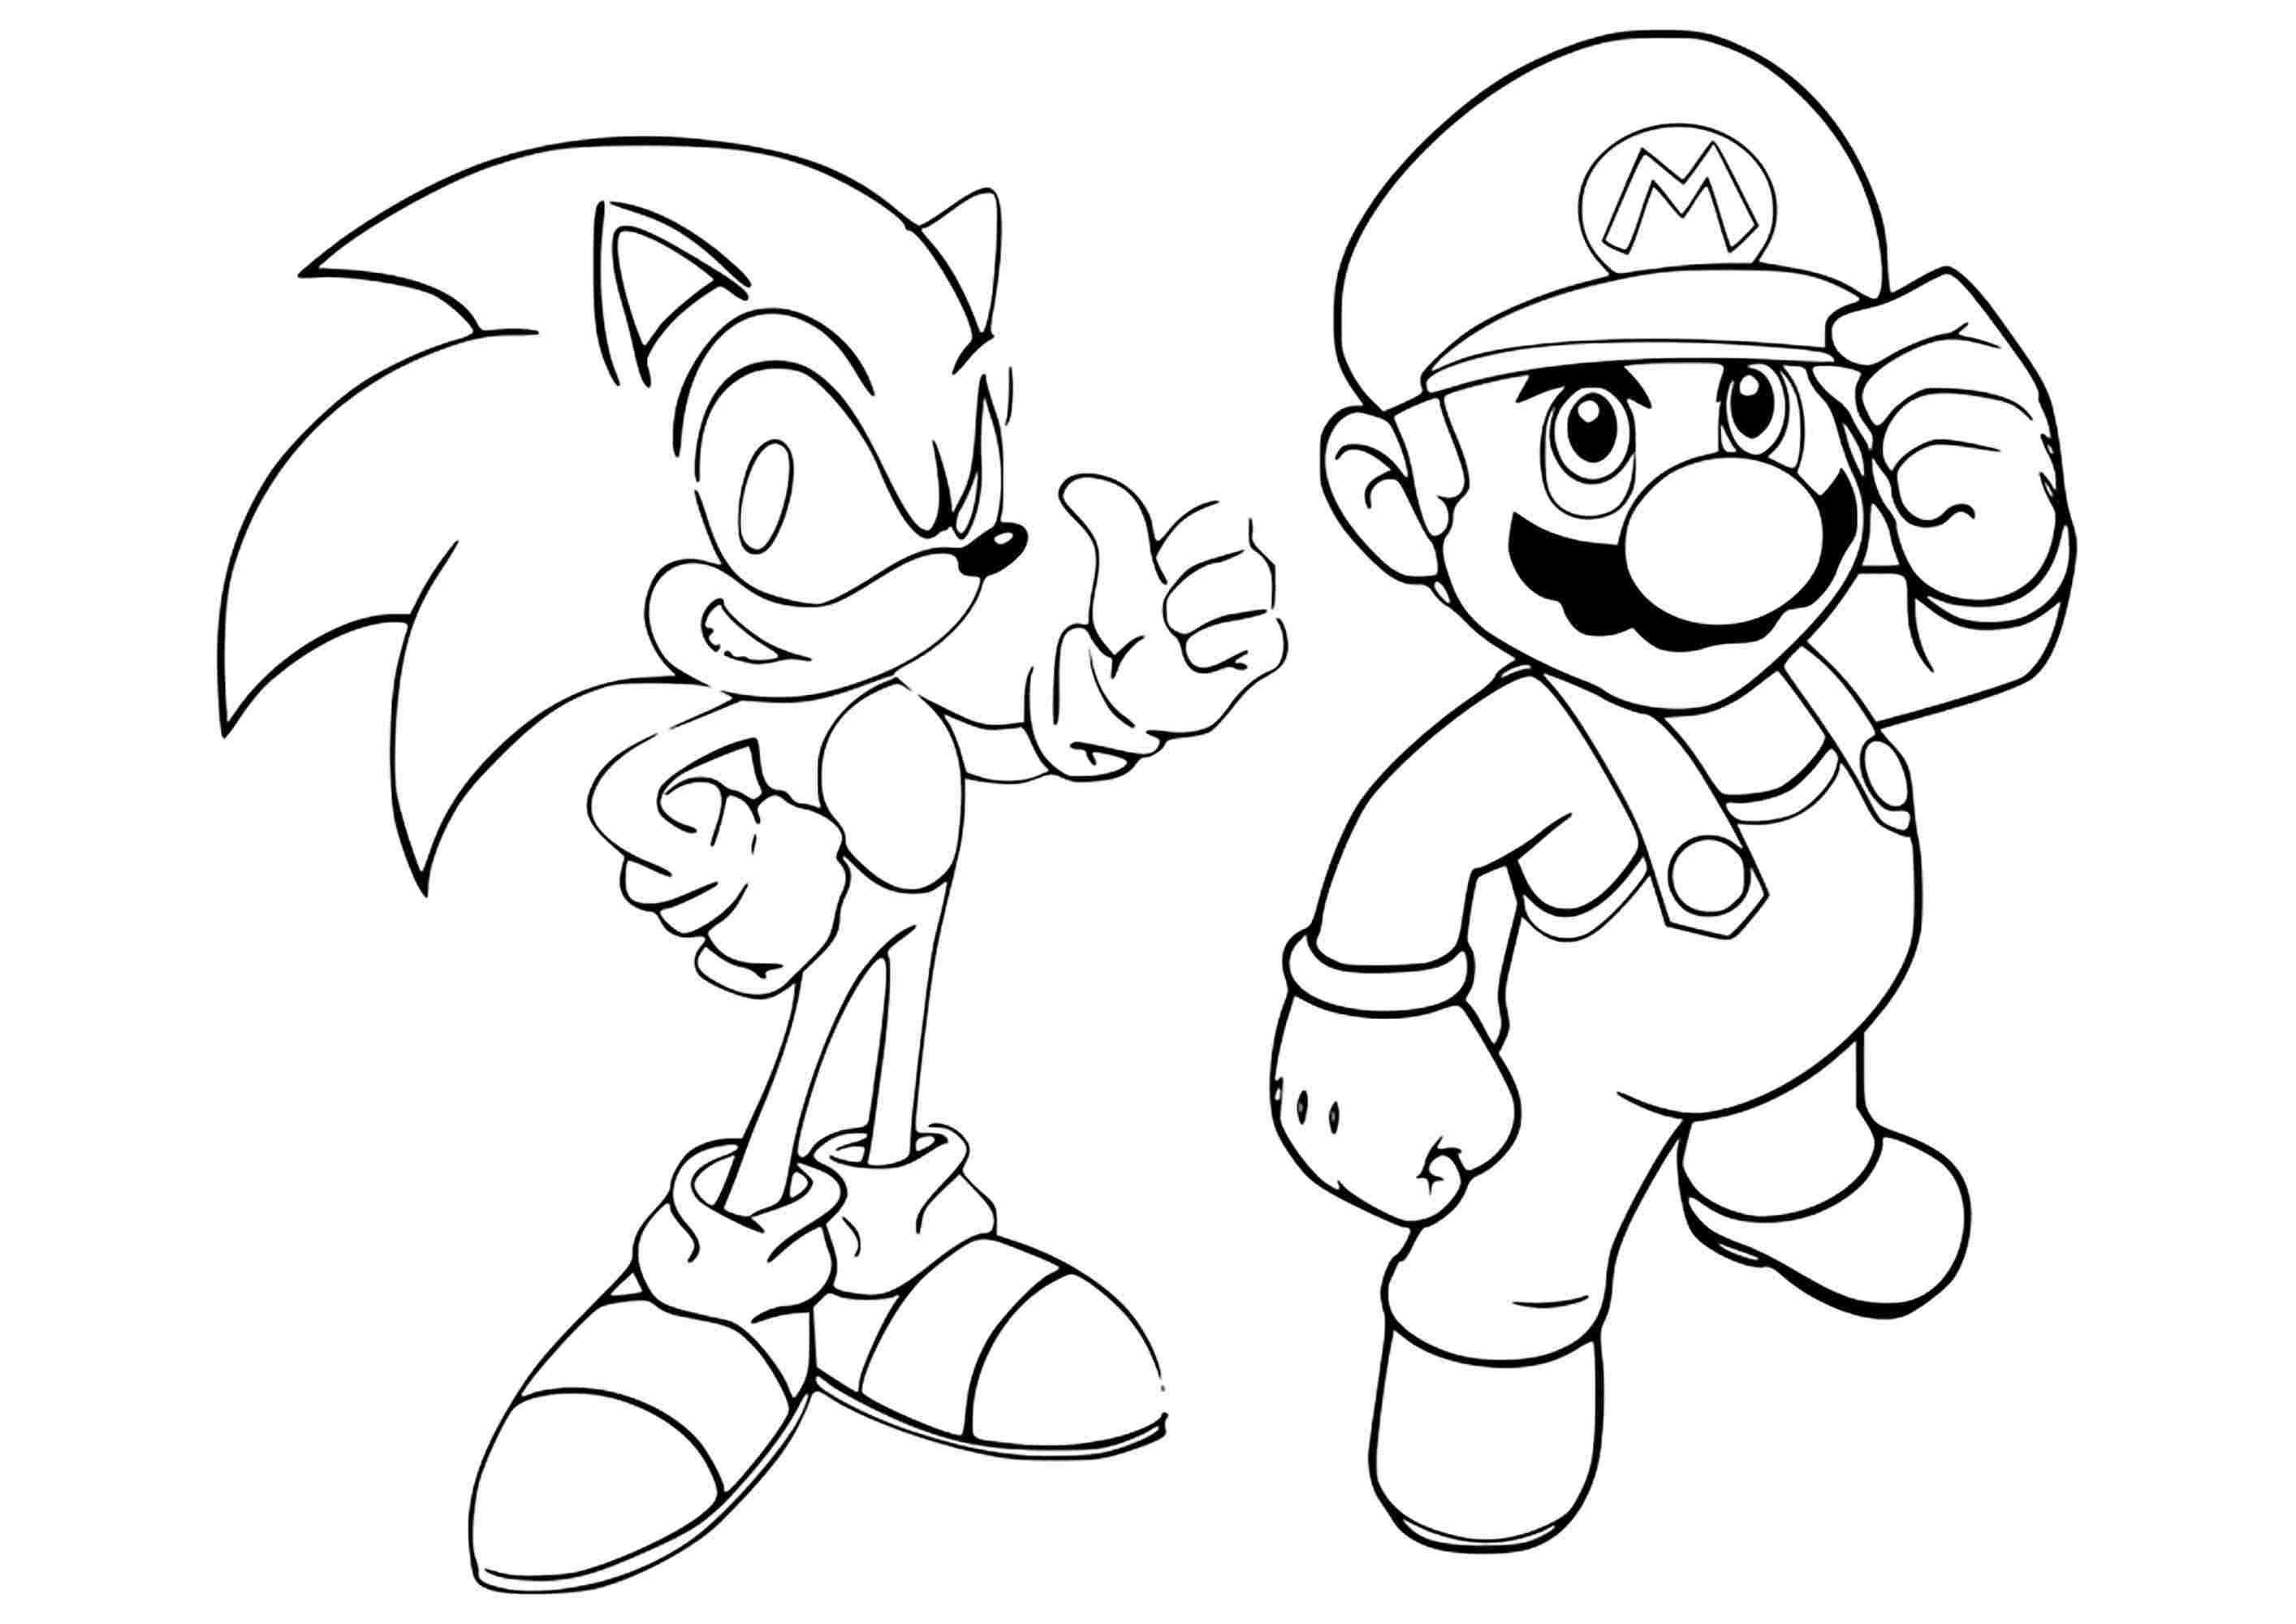 Sonic and Mario at the Olympic Tokyo games console Coloring Page